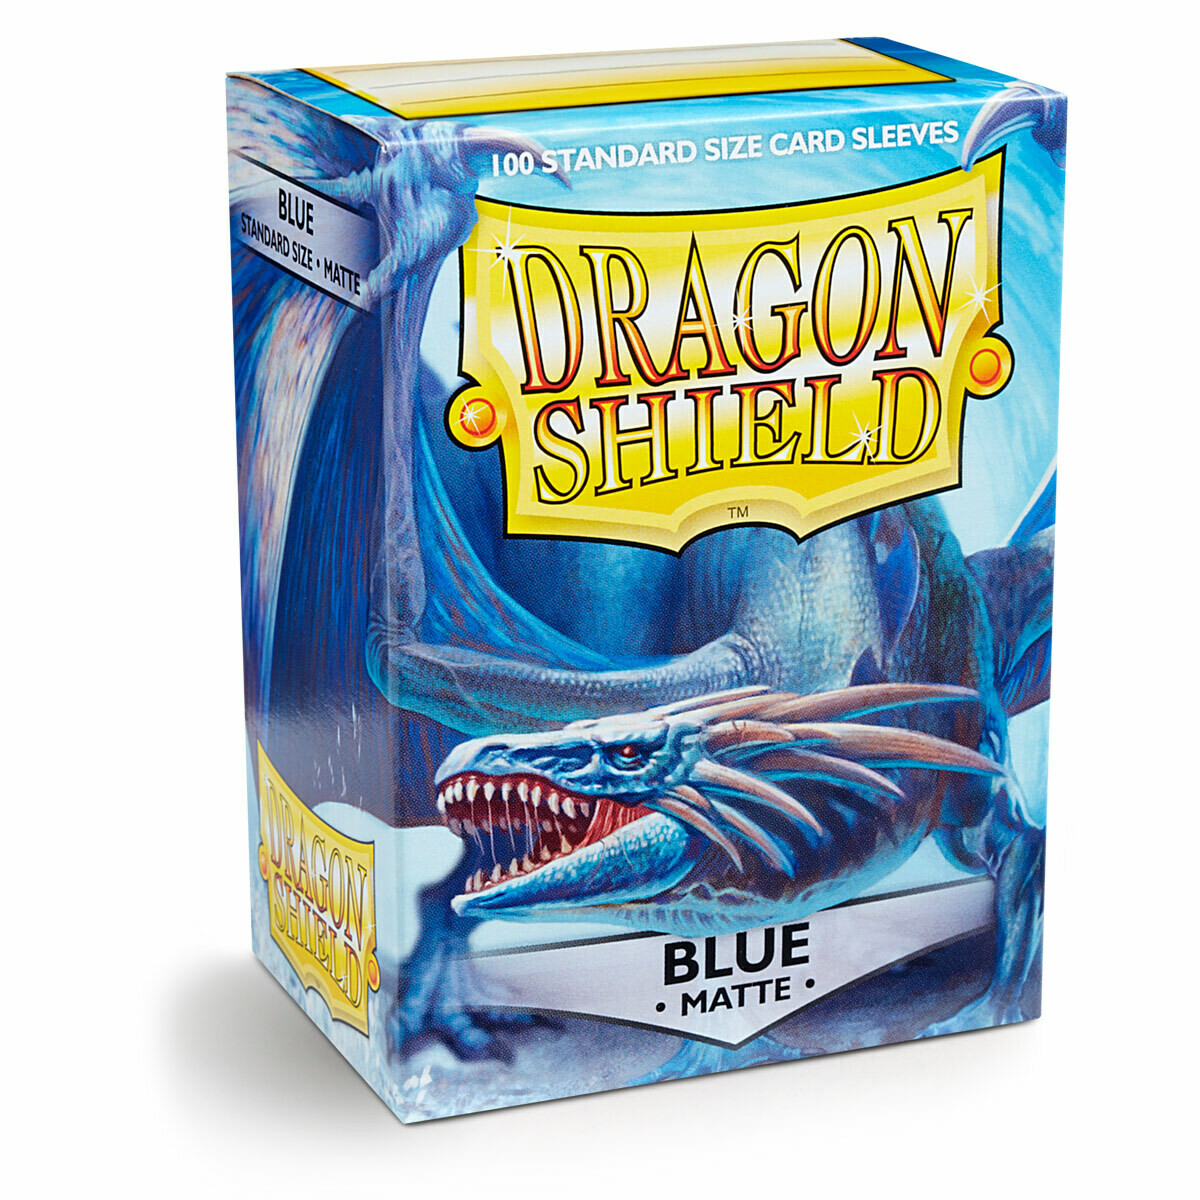 Dragon Shield 100 Sleeves - Matte Blue